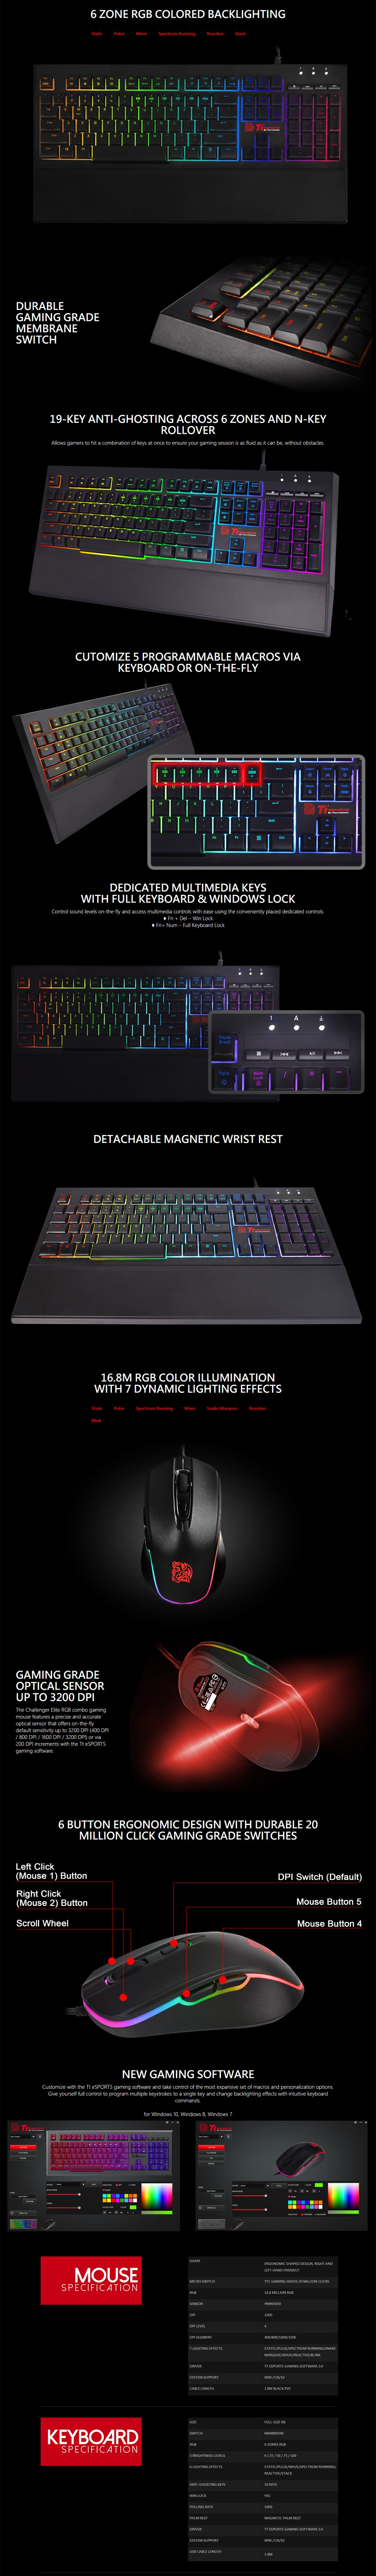 Tt eSPORTS Challenger Elite RGB Keyboard and Mouse Combo